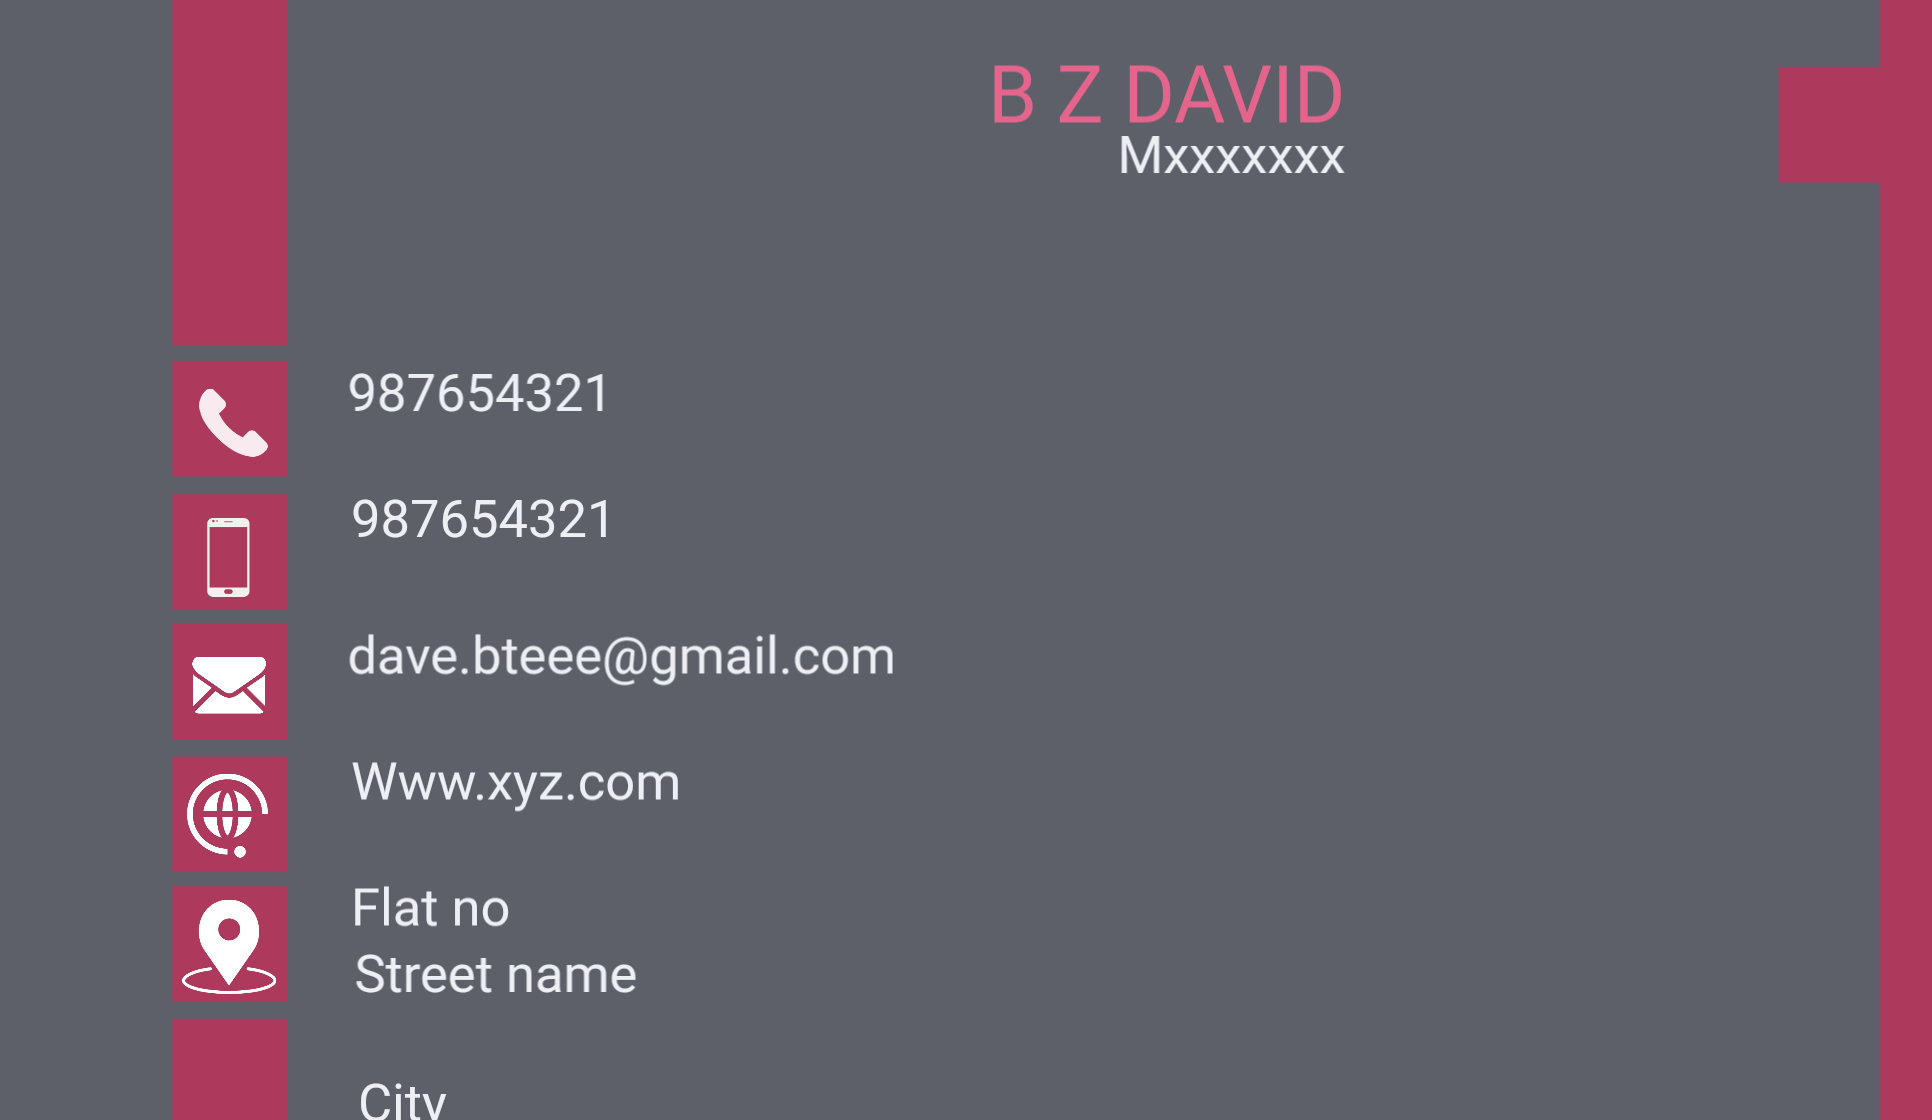 Business card Professional and print ready PDF/PNG